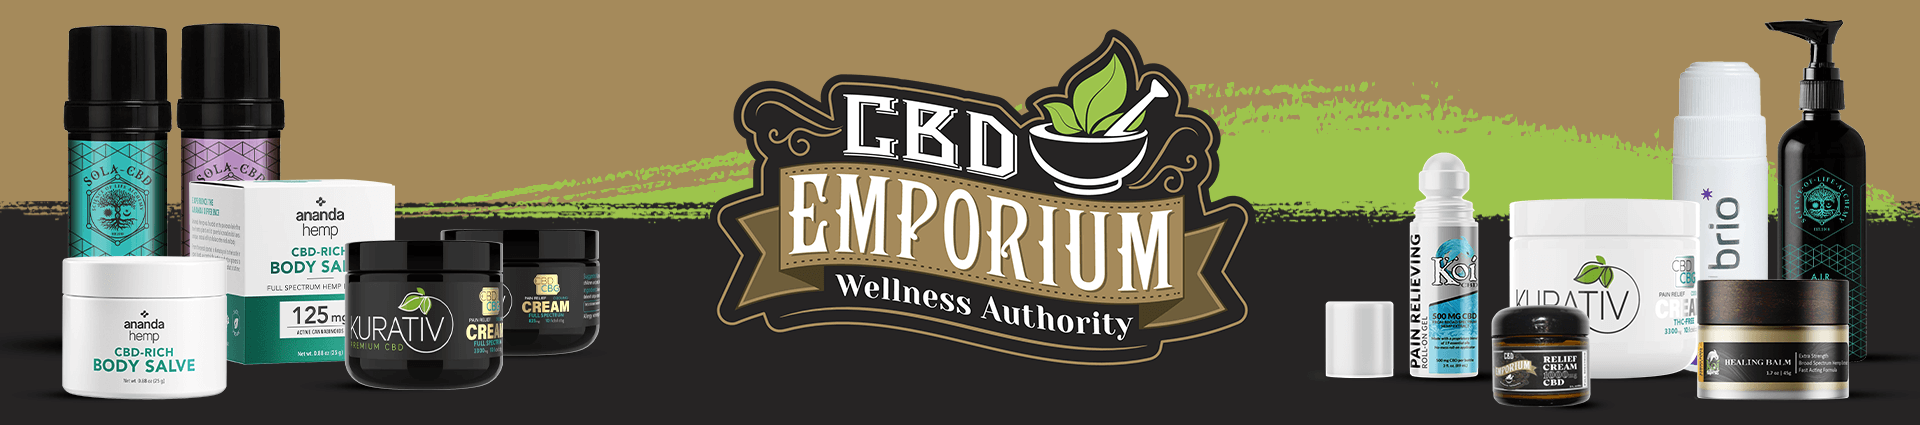 CBD Topicals at CBD Emporium